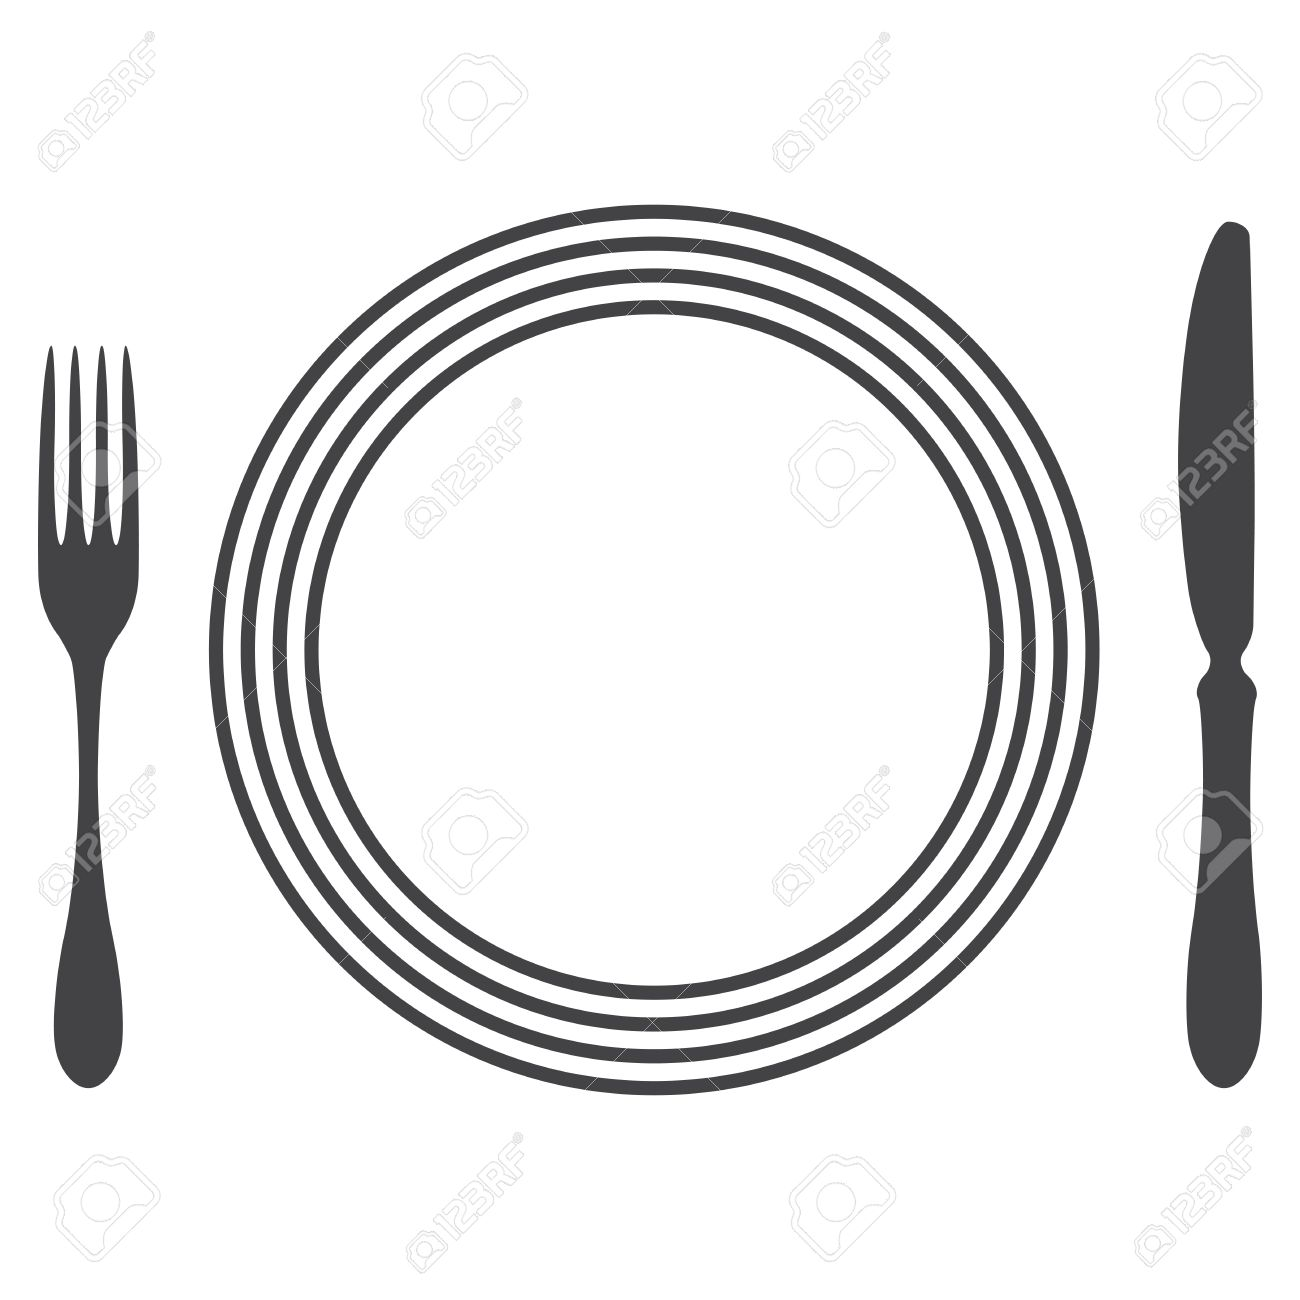 Etiquette Proper Table Setting Stock Vector - 17302517  sc 1 st  123RF.com & Etiquette Proper Table Setting Royalty Free Cliparts Vectors And ...